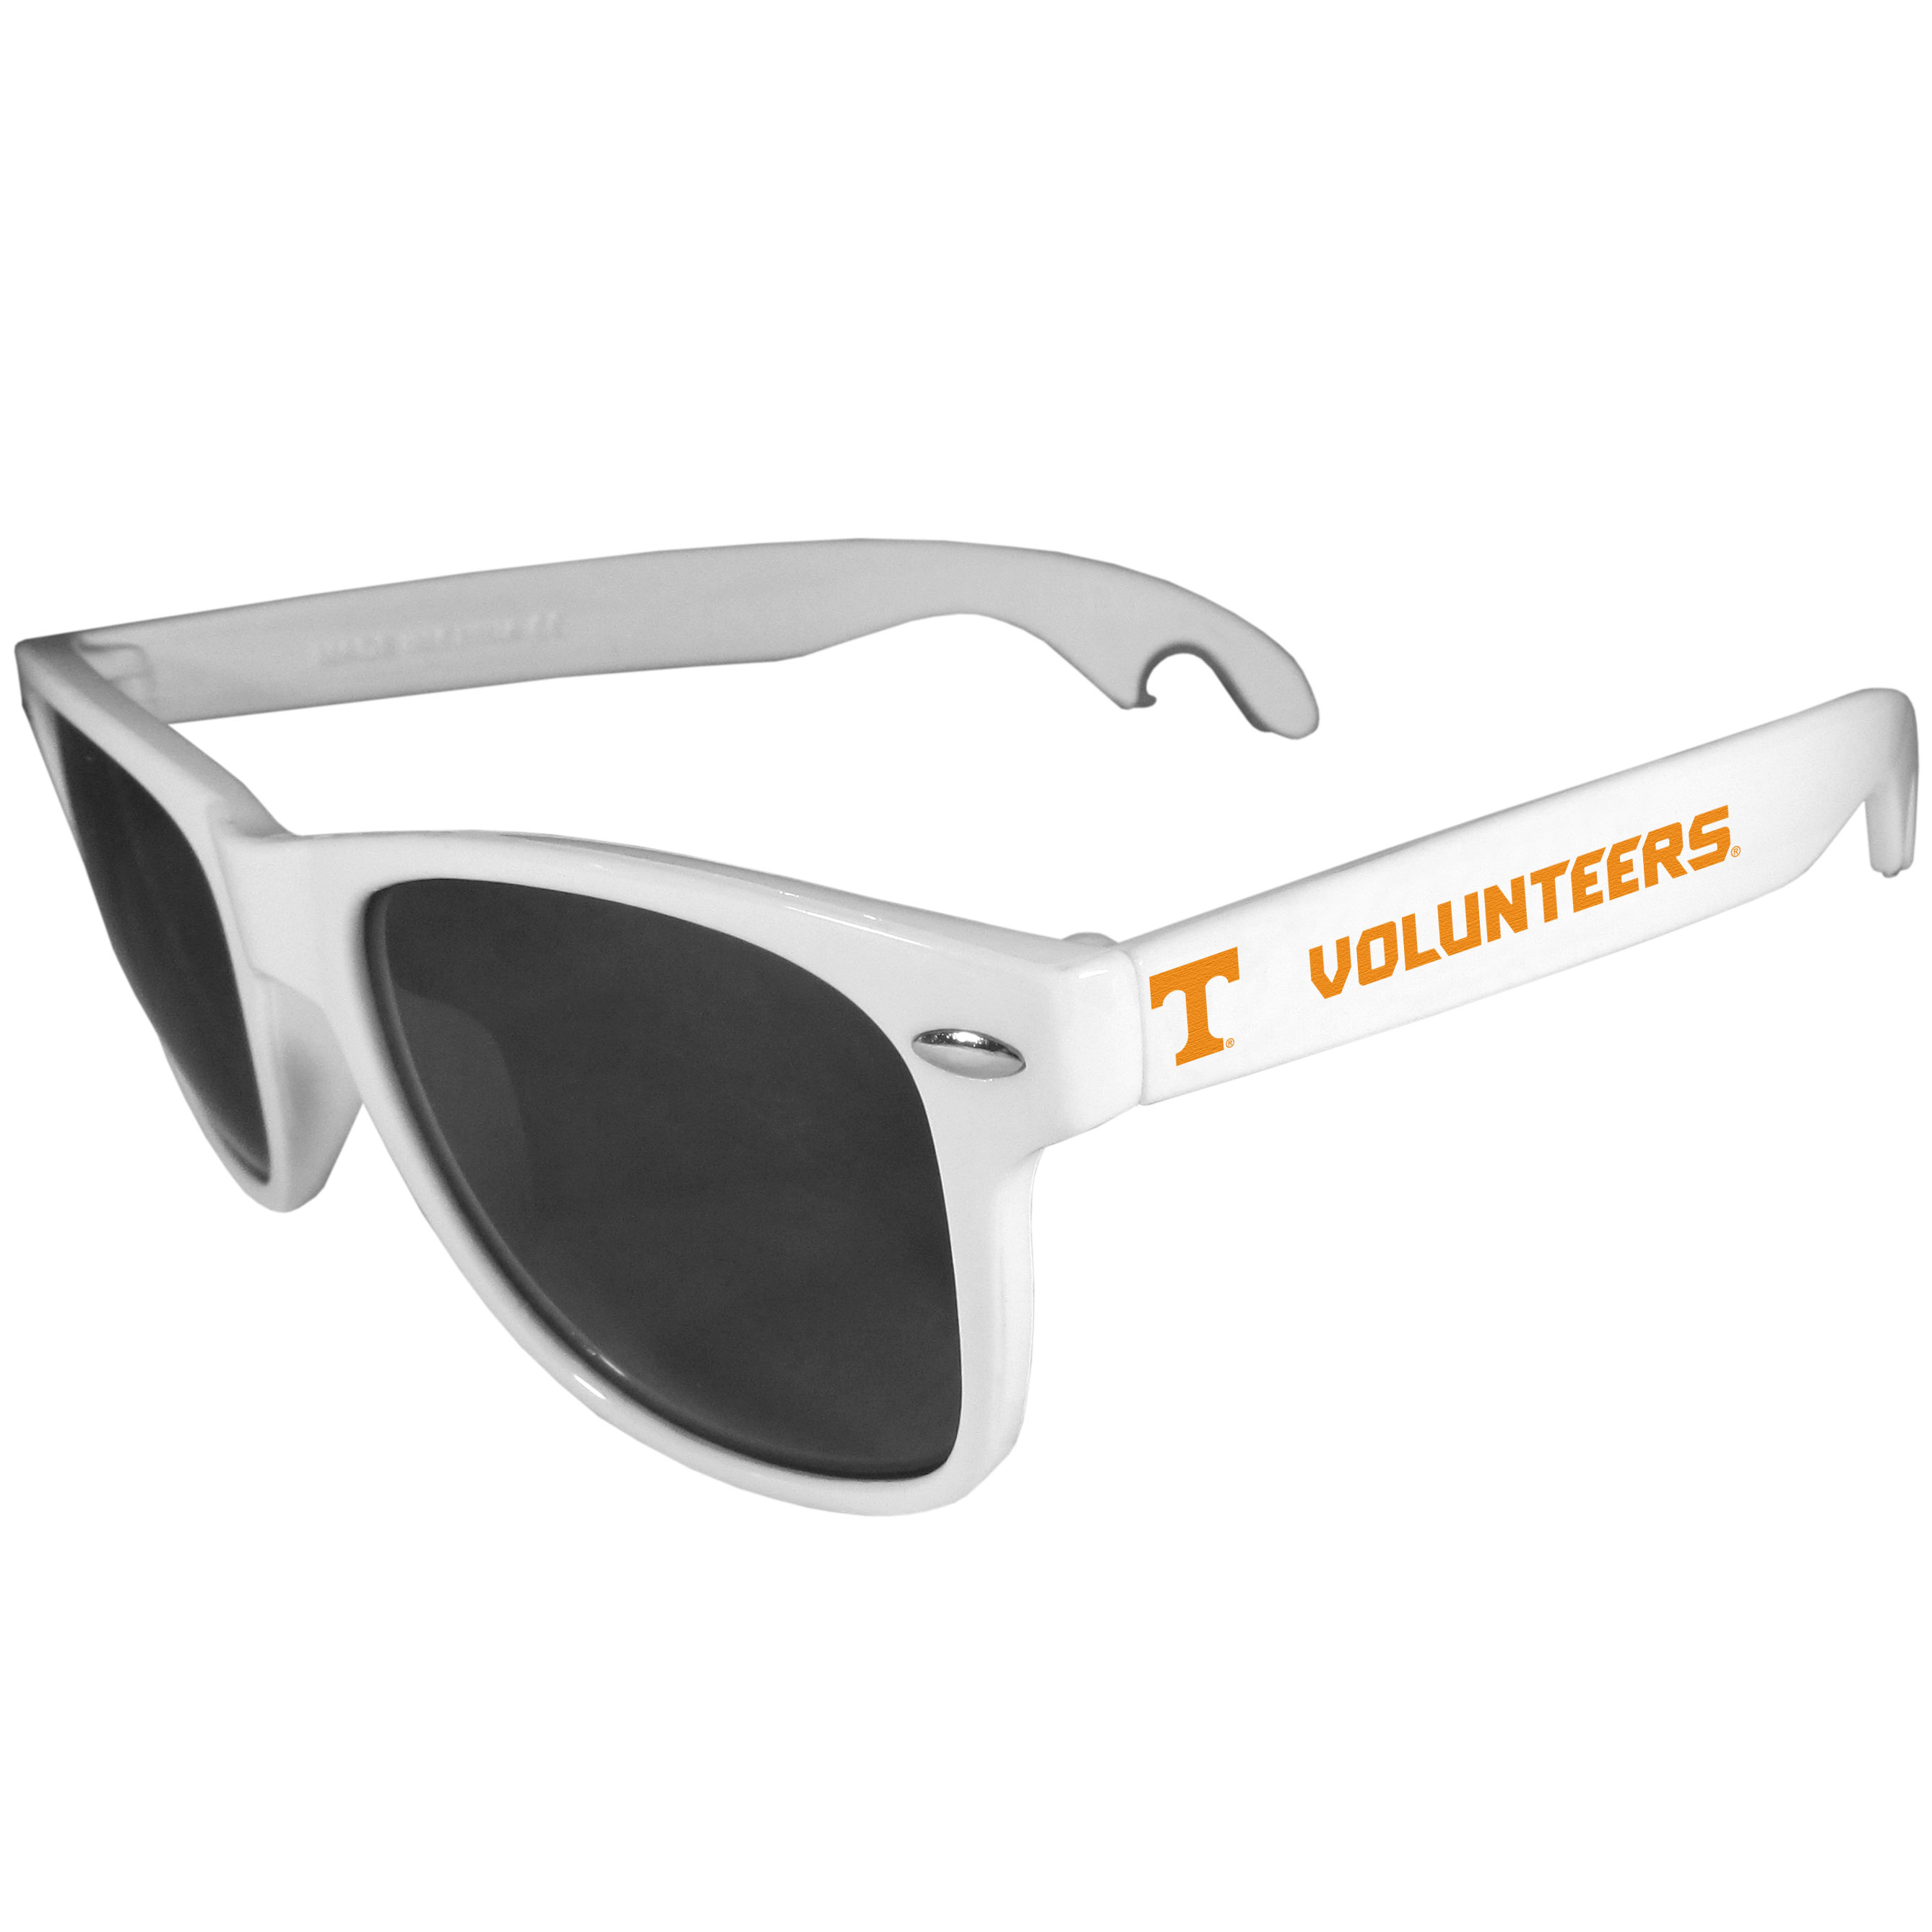 Tennessee Volunteers Beachfarer Bottle Opener Sunglasses, White - Seriously, these sunglasses open bottles! Keep the party going with these amazing Tennessee Volunteers bottle opener sunglasses. The stylish retro frames feature team designs on the arms and functional bottle openers on the end of the arms. Whether you are at the beach or having a backyard BBQ on game day, these shades will keep your eyes protected with 100% UVA/UVB protection and keep you hydrated with the handy bottle opener arms.